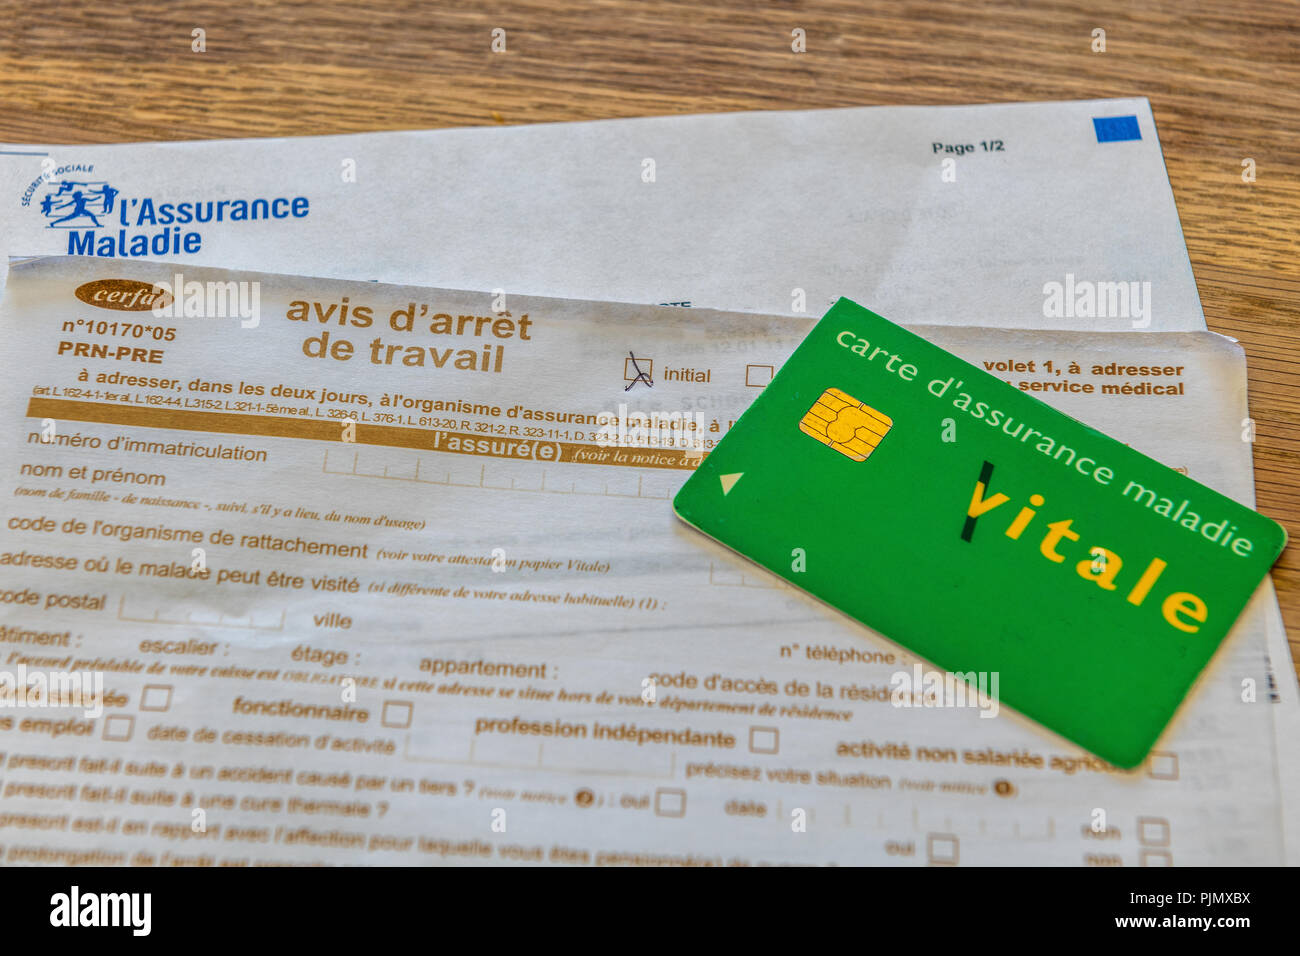 code de l organisme de rattachement carte vitale French document of sick leave, stoppage of work, and Vitale card